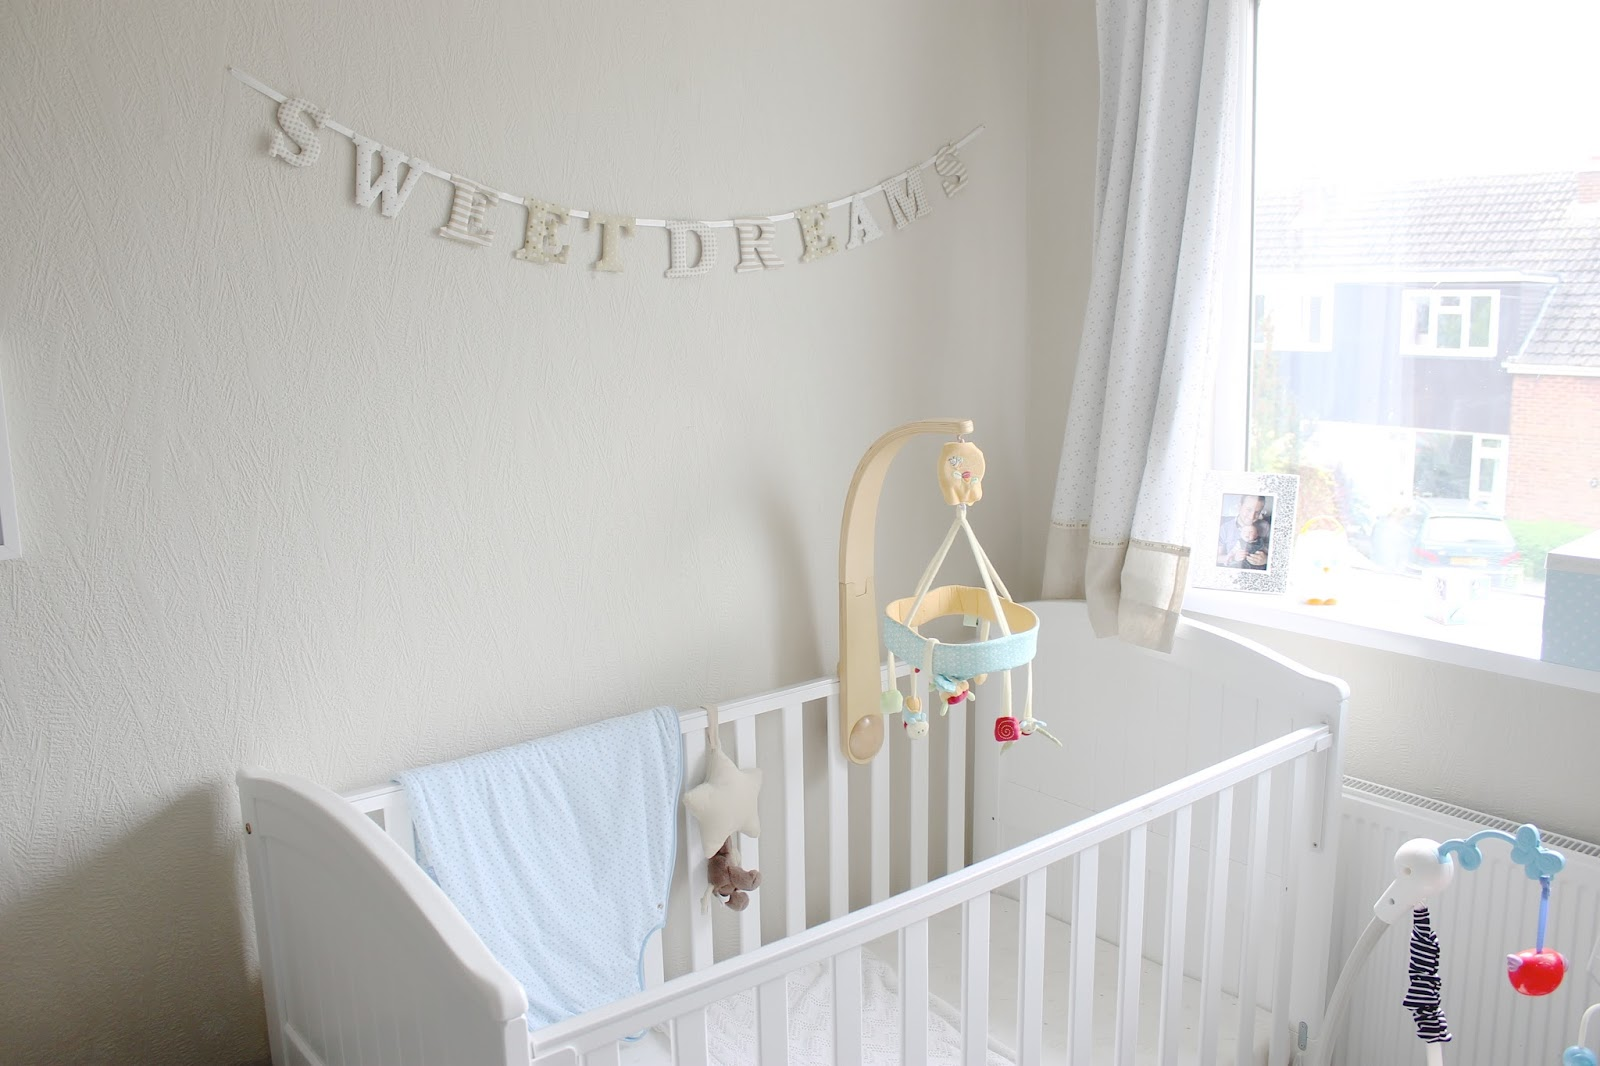 House tour ethans bedroom nursery uk family travel for Baby room decorating ideas uk